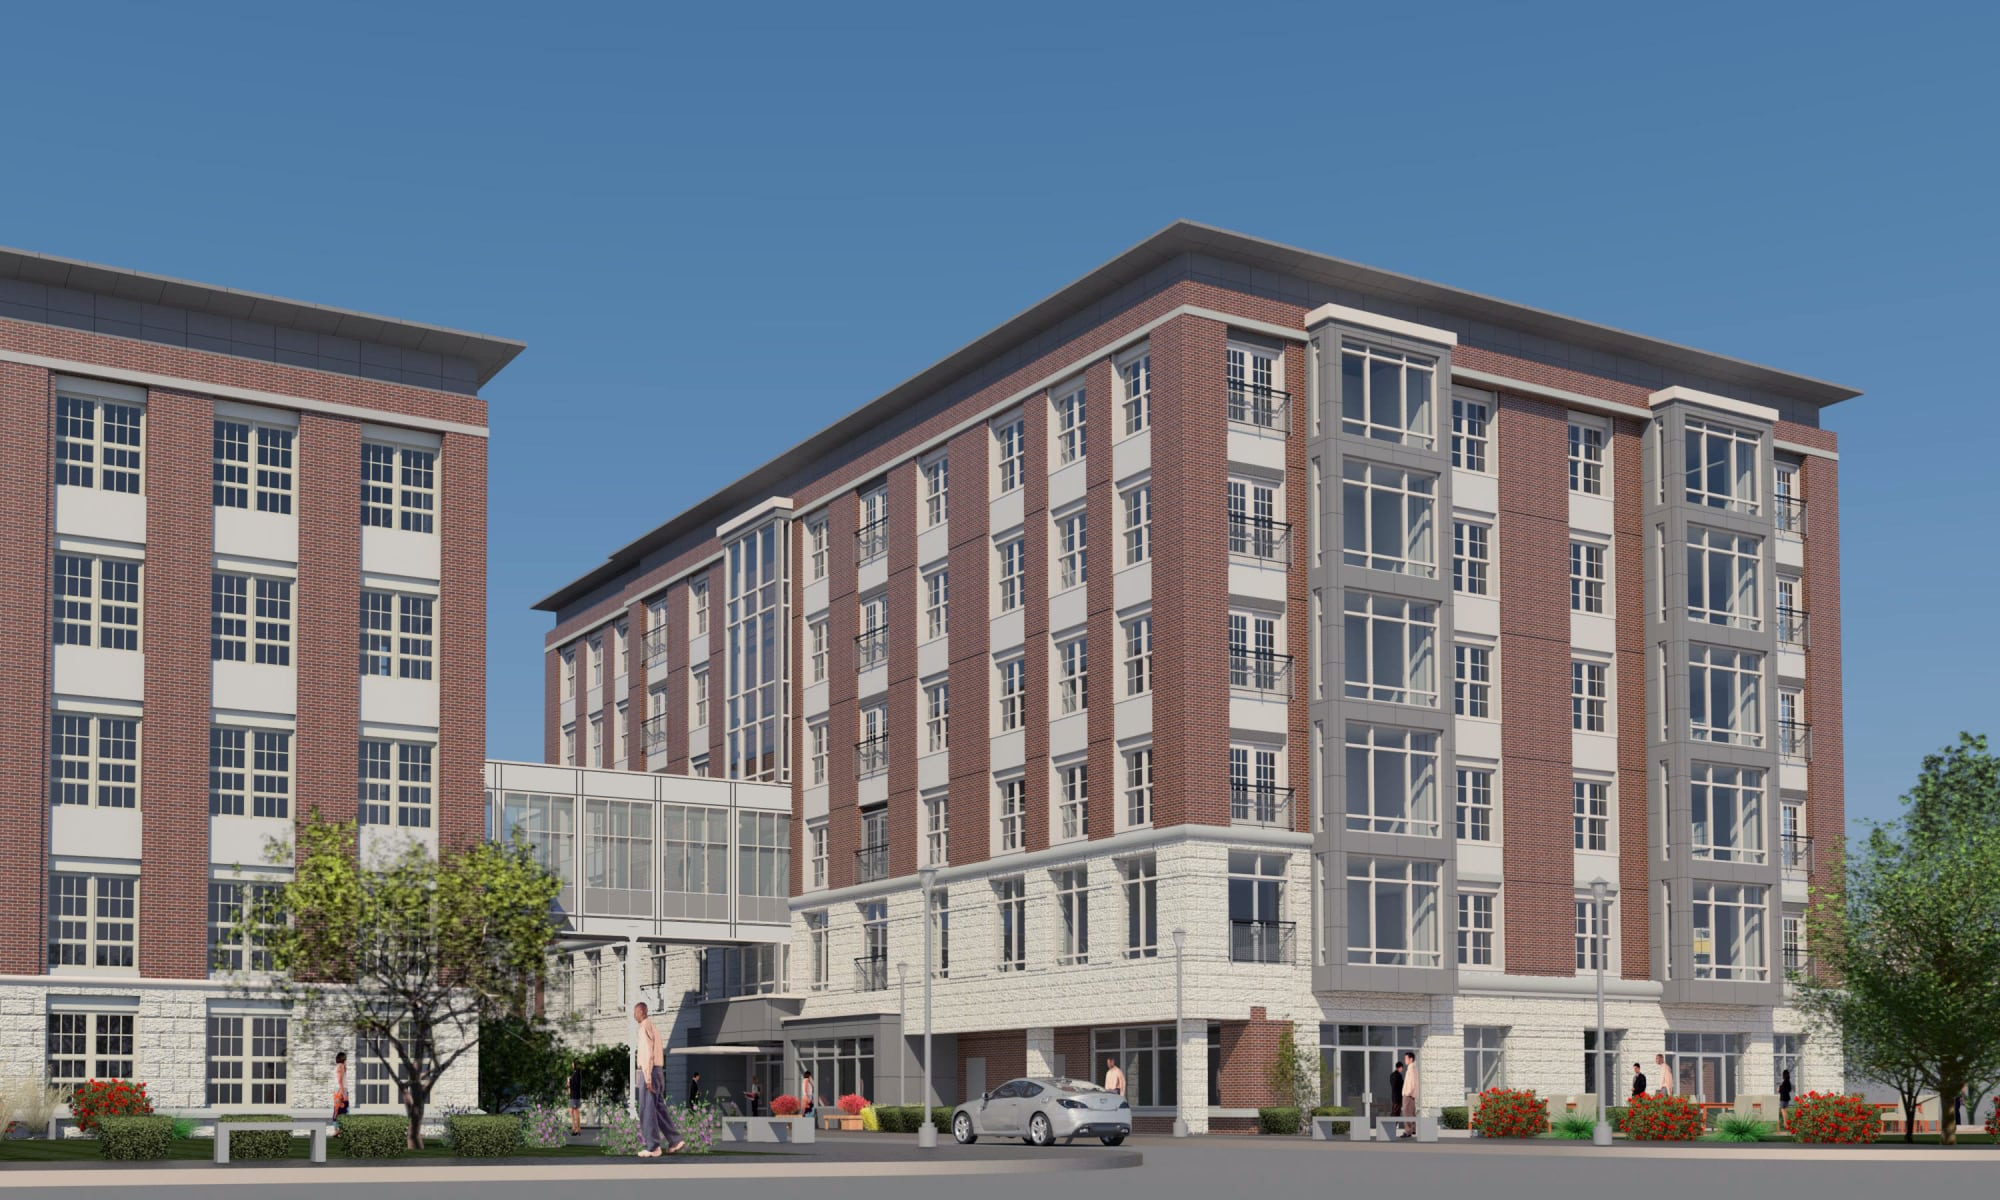 Rendering of the exterior of The Harper at Harmon Meadow